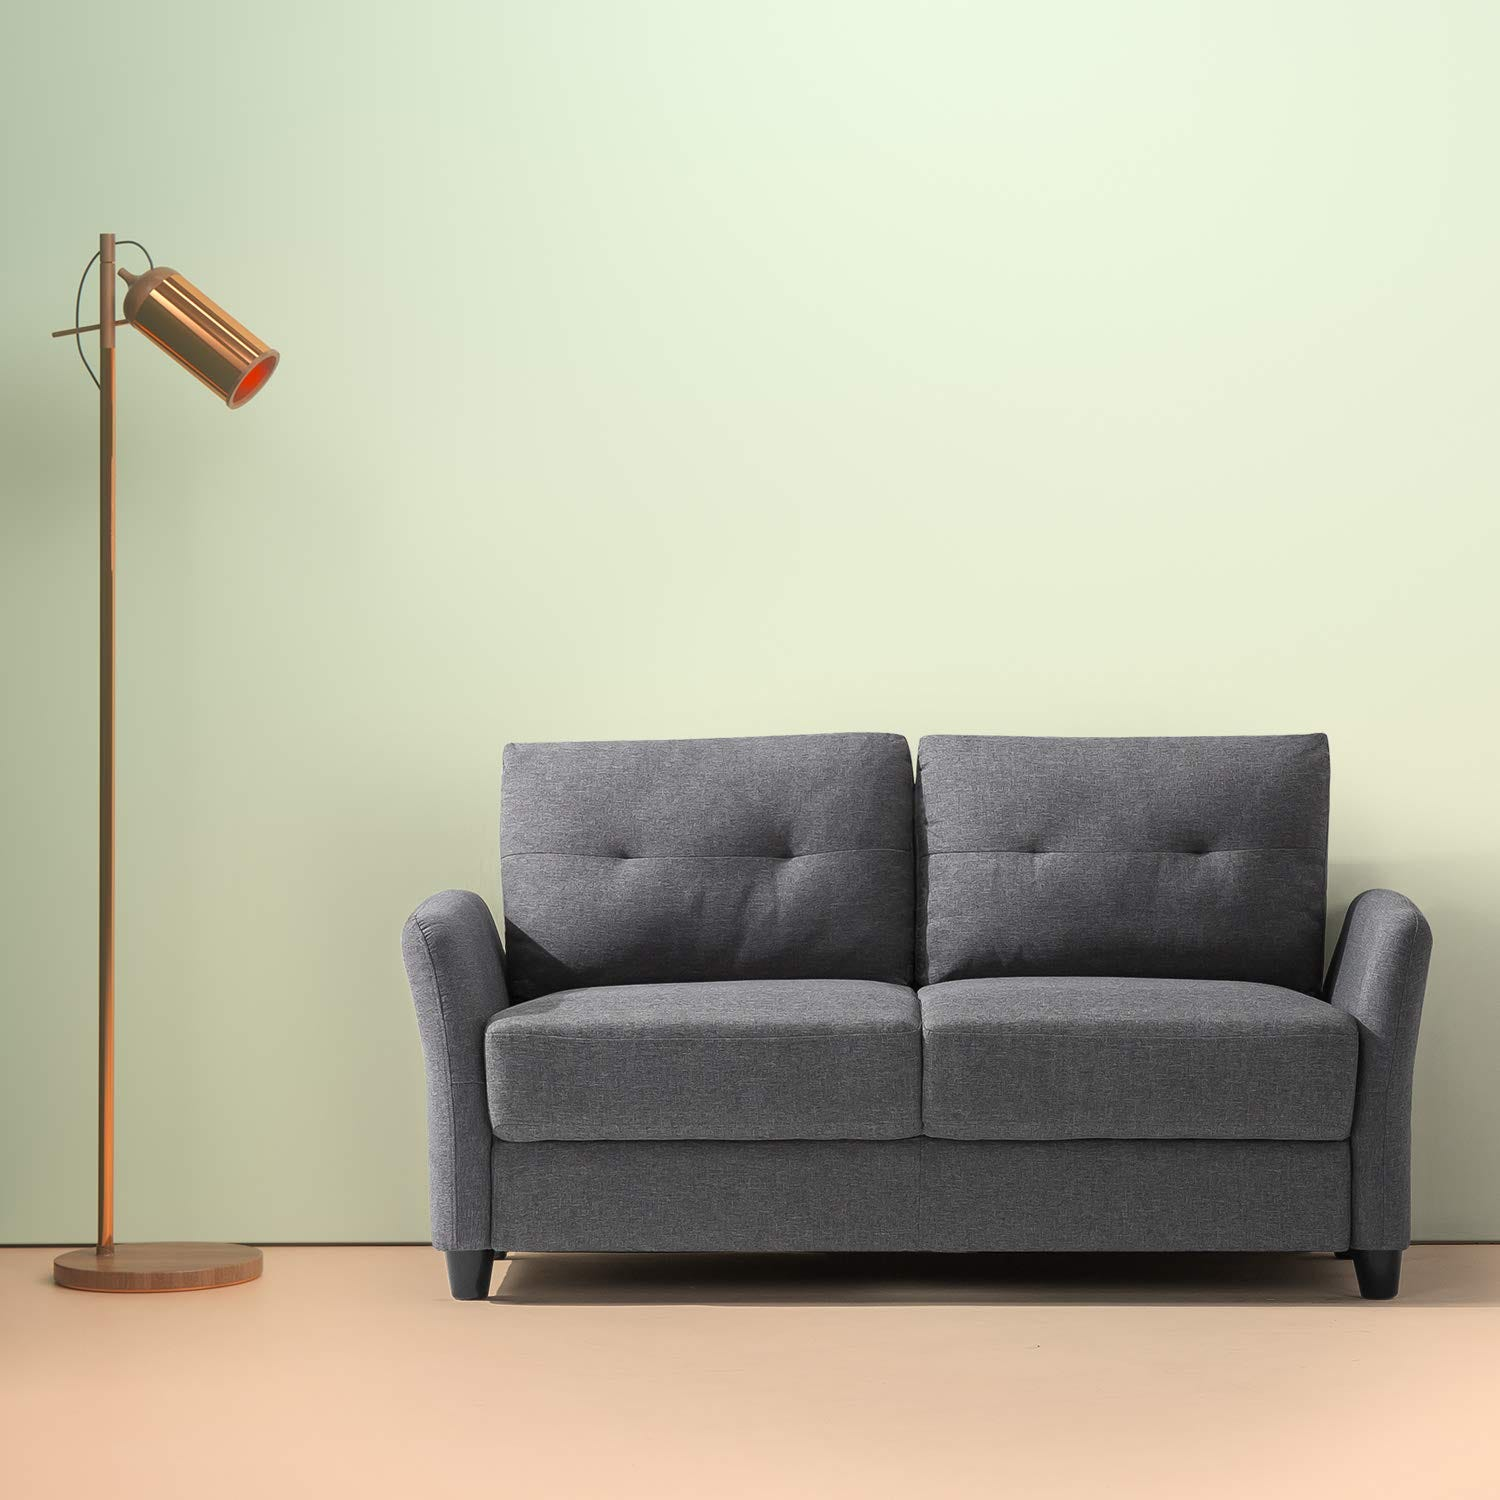 Couch for small space Blue Zinus Emmylouloublogcom Best Small Loveseats For Affordable Spacesaving Sofa